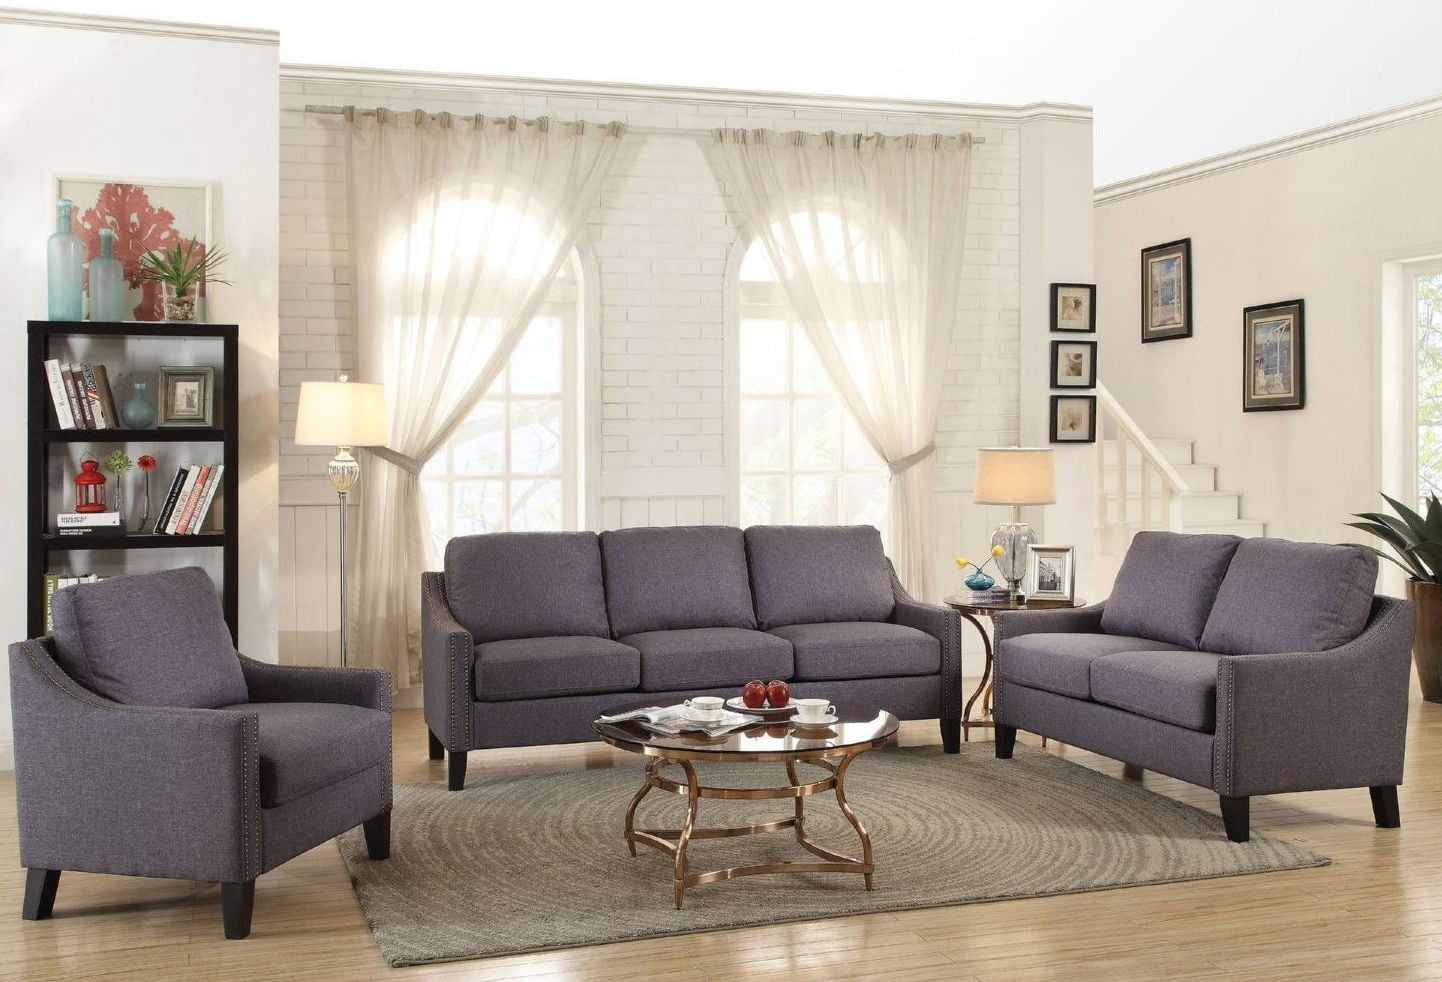 Zapata Jr Gray Linen Living Room Set from Acme | Coleman Furniture